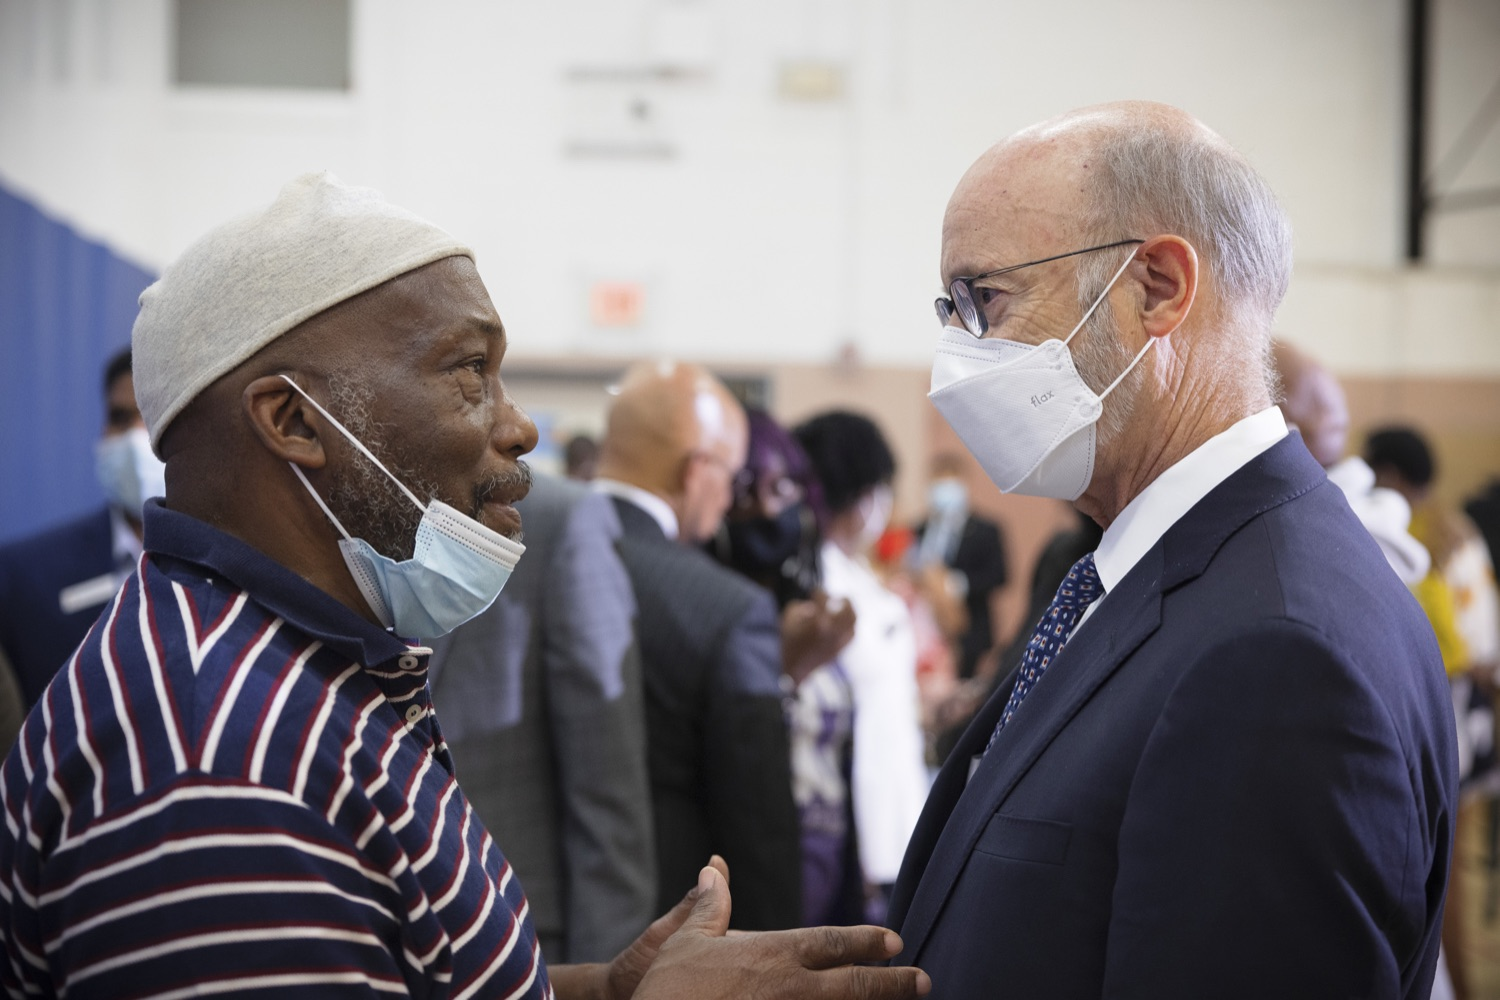 """<a href=""""https://filesource.wostreaming.net/commonwealthofpa/photo/20078_gov_gunviolence_dz_011.jpg"""" target=""""_blank"""">⇣Download Photo<br></a>Pennsylvania Governor Tom Wolf speaking with the community members.  Governor Tom Wolf today joined state lawmakers to remind communities and organizations that $24 million in state funding is available to address community violence.  Philadelphia, PA - September 23, 2021"""